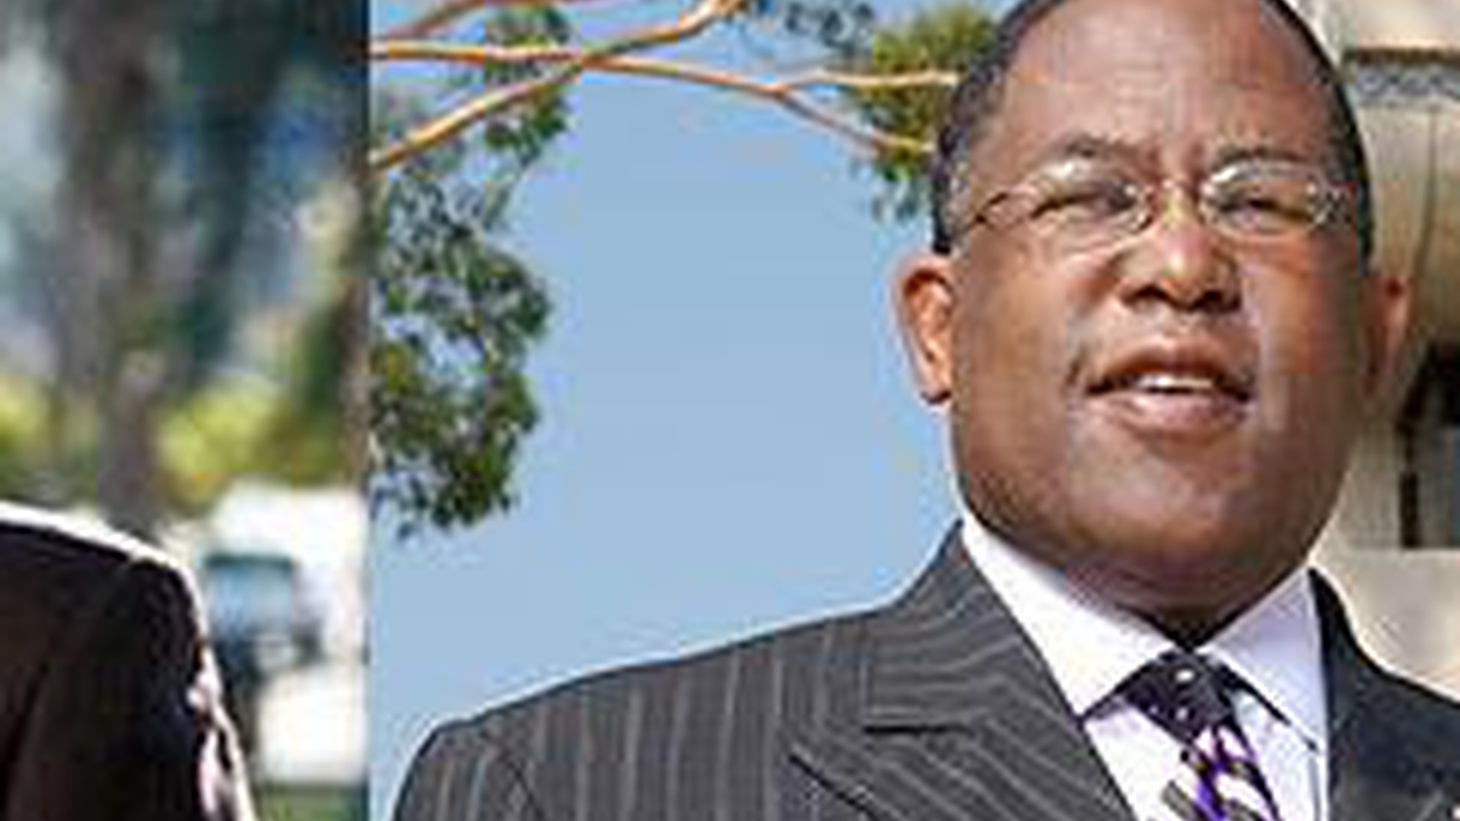 One of the rarest events in Los Angeles politics is an actual contest for a seat on the county board of supervisors. But Yvonne Burke's resignation has set the stage for a confrontation between state senator Mark Ridley-Thomas and LA City Councilman Bernard Parks.